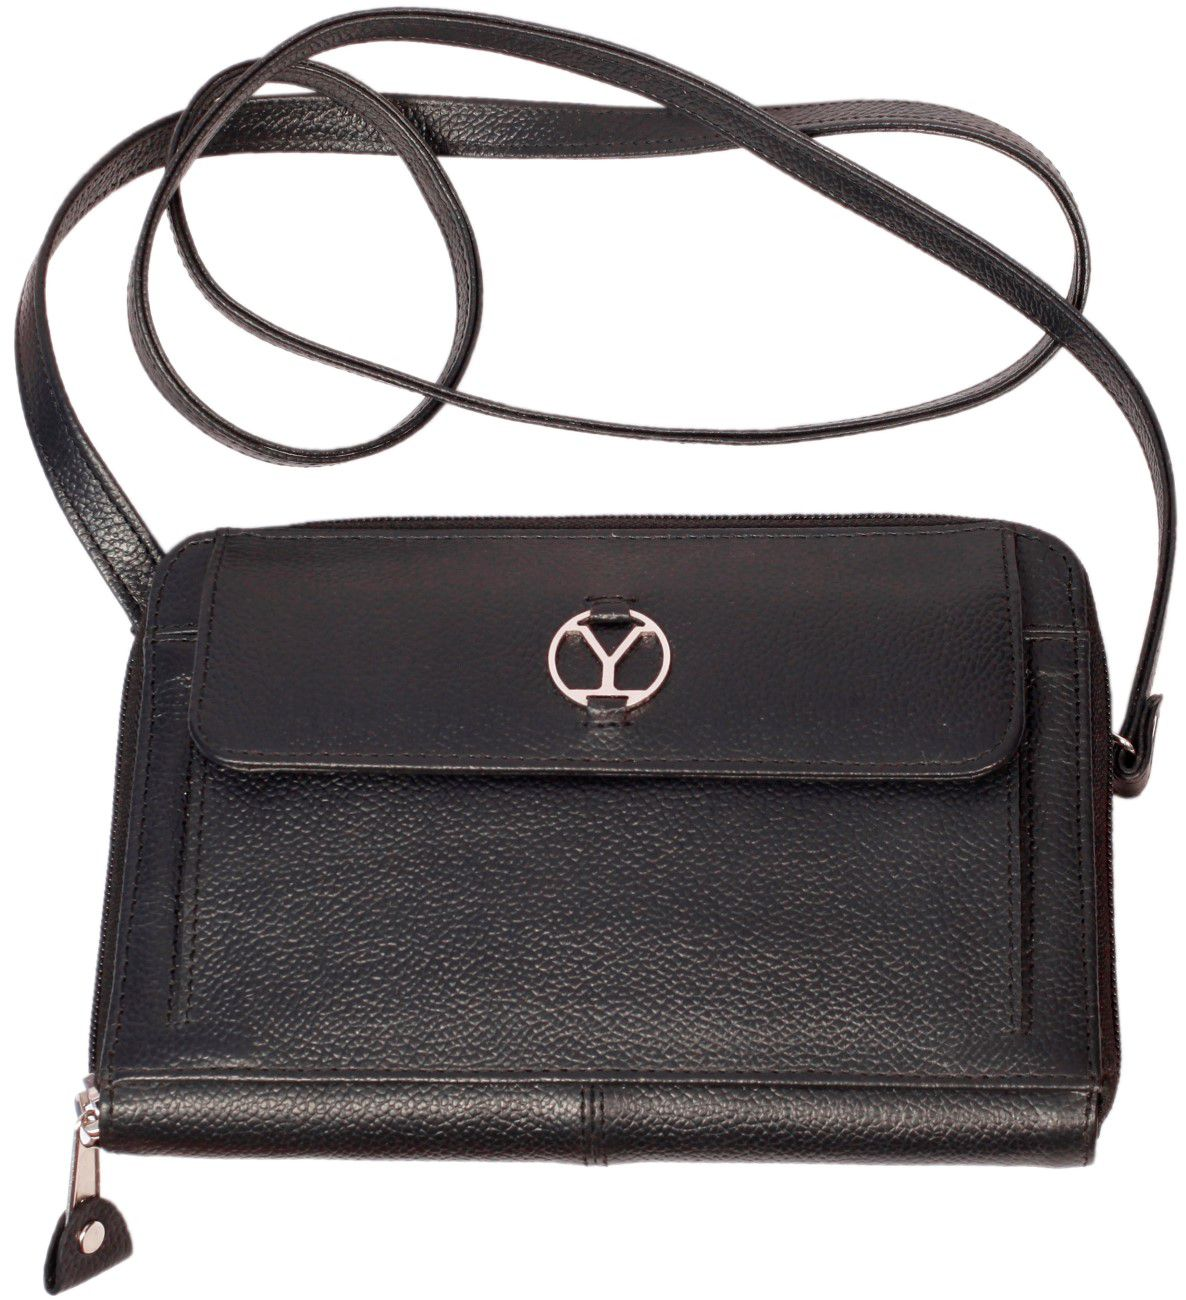 Ystore Black Pure Leather Sling Bag - Buy Ystore Black Pure ...